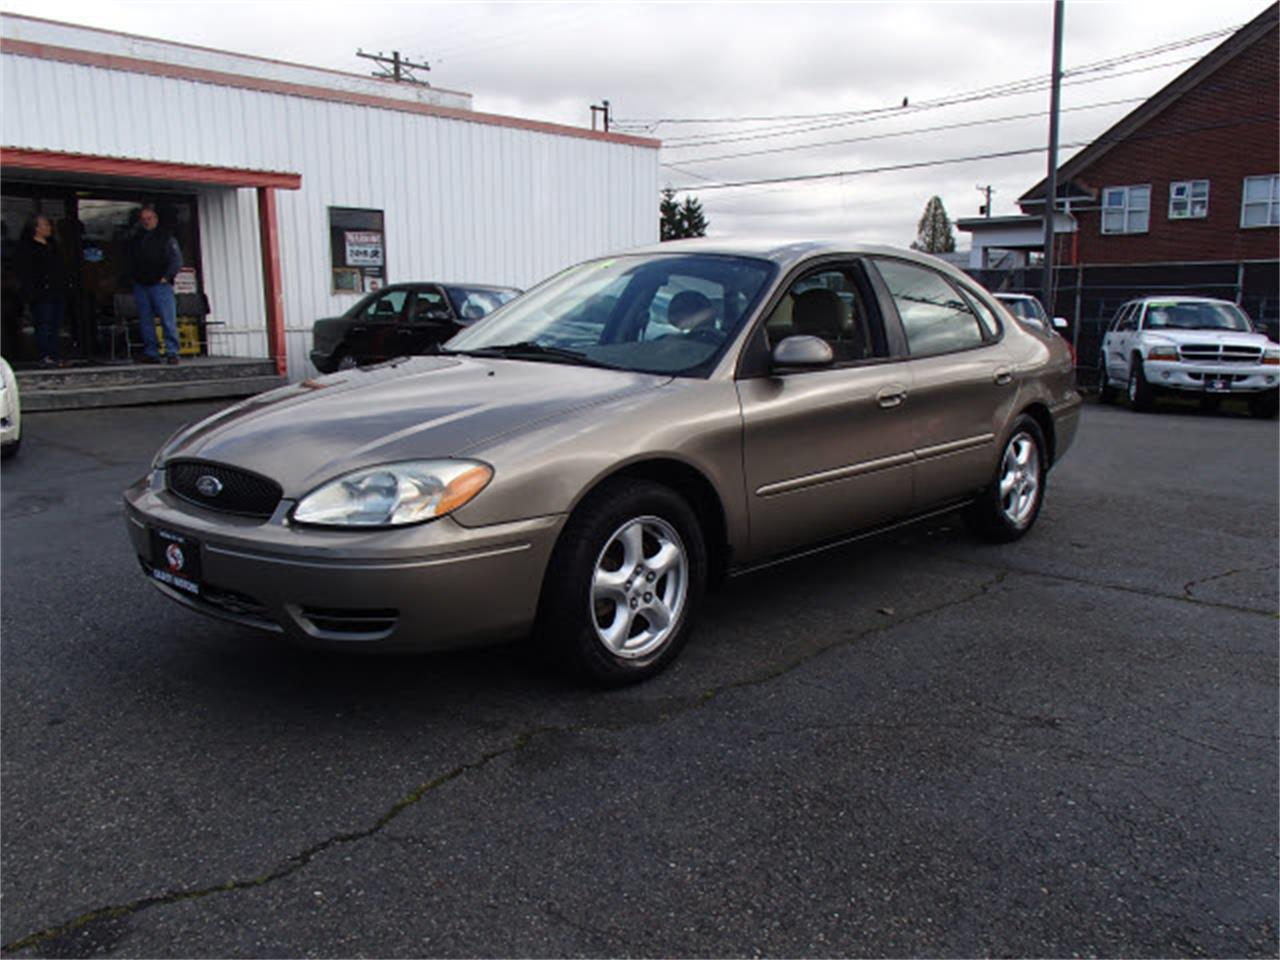 Large picture of 04 ford taurus n5bn